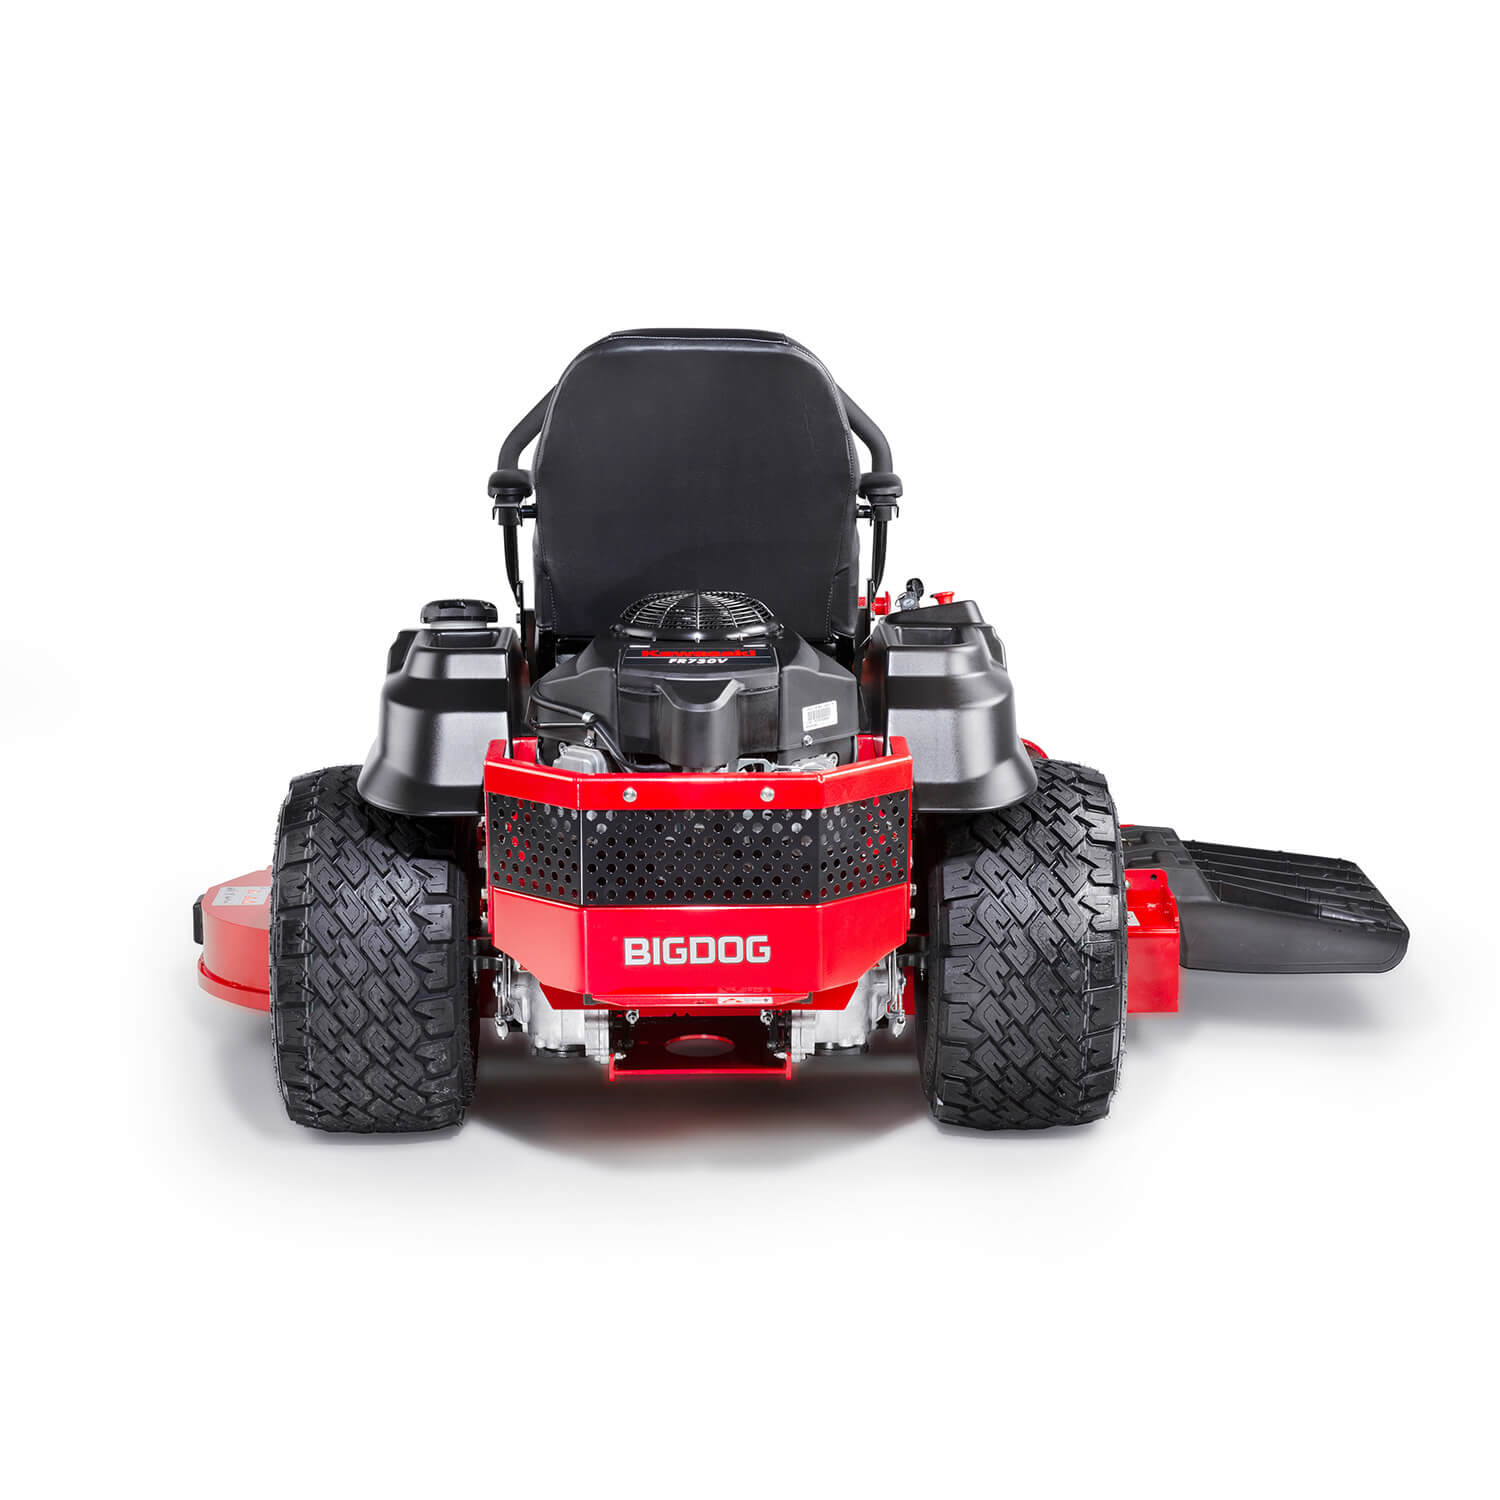 Image of the rear of a riding mower